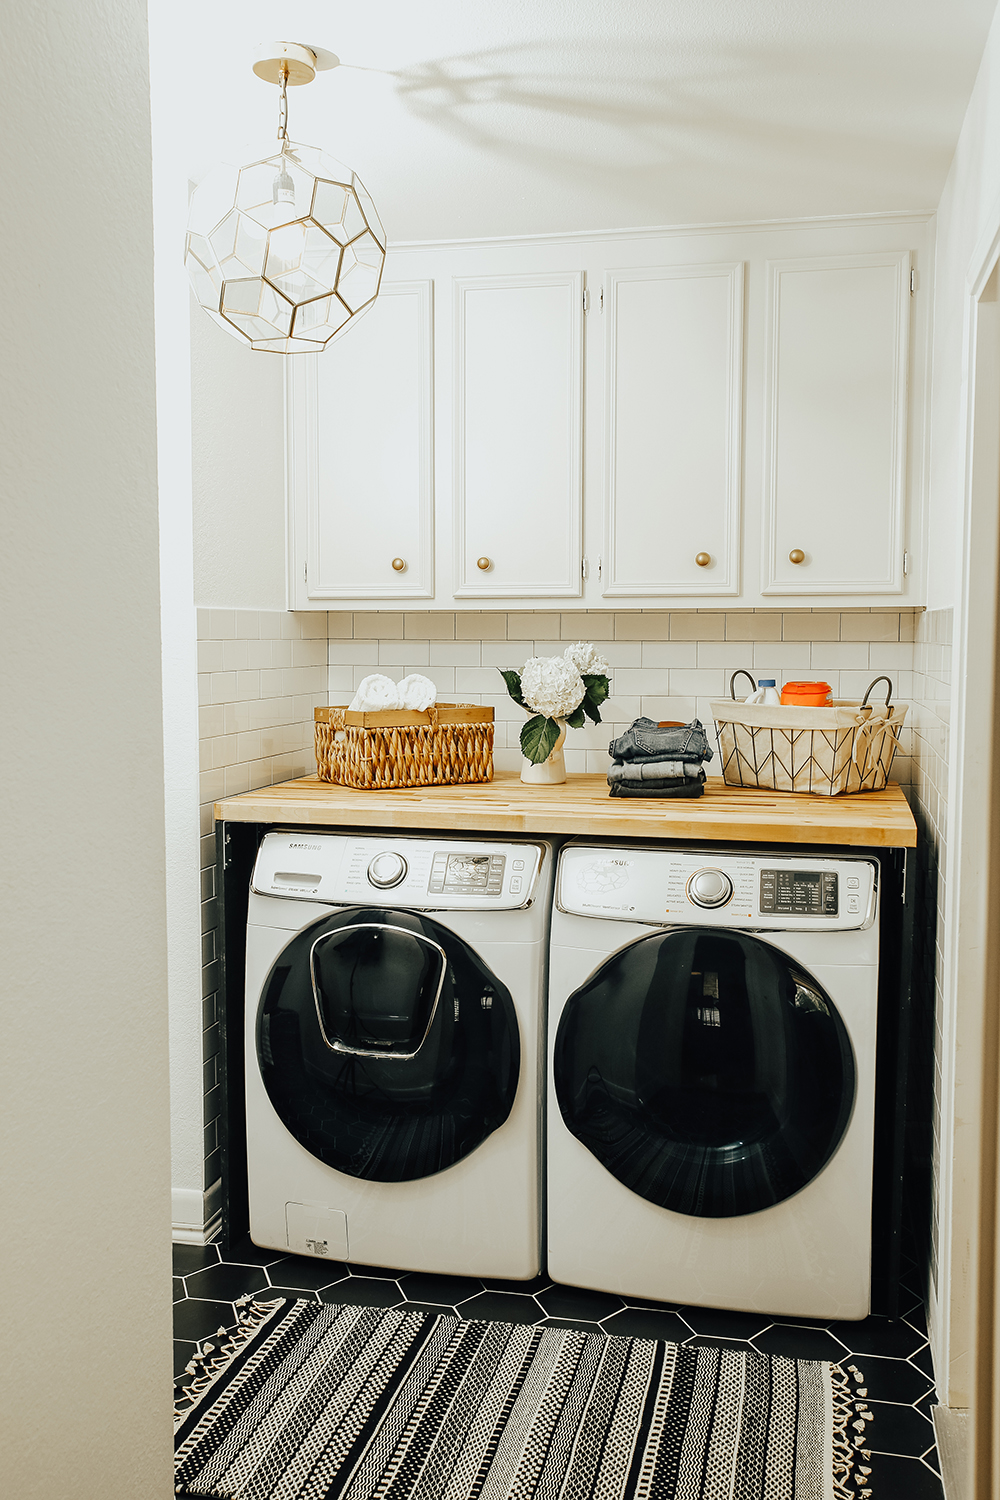 livvyland-blog-olivia-watson-home-decor-interior-design-before-after-laundry-room-makeover-renovation-update-9